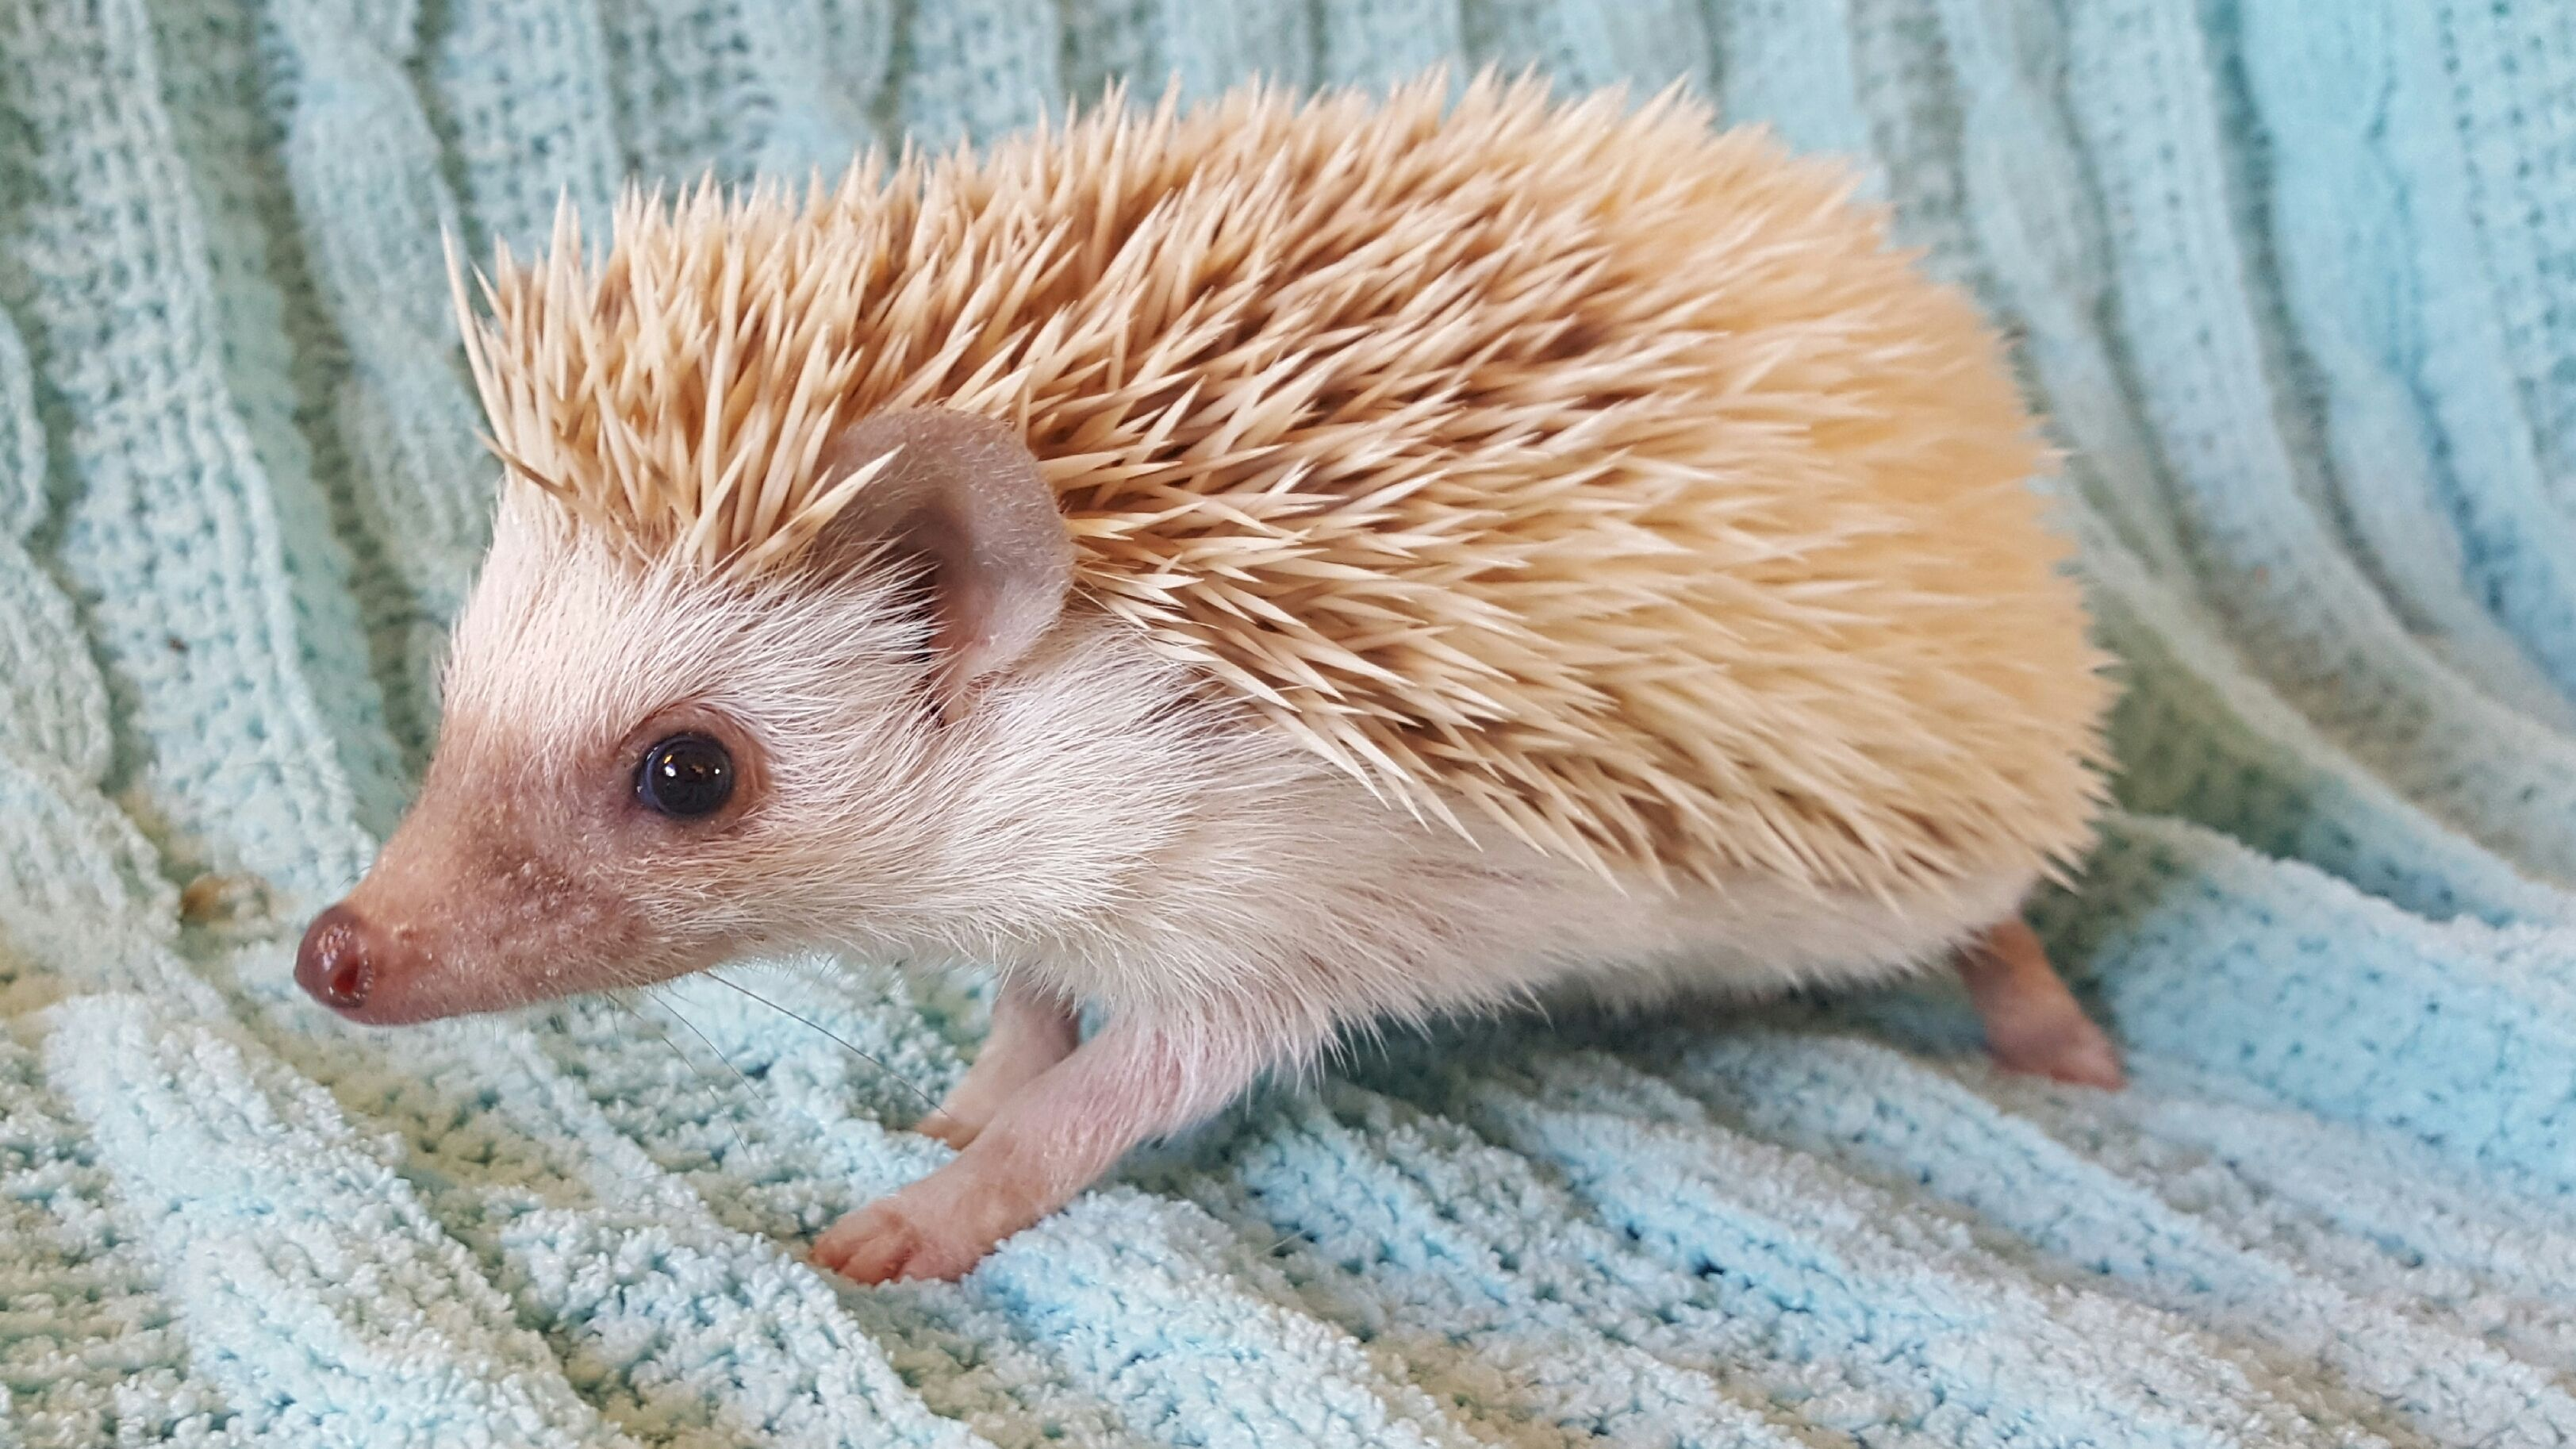 Janda Exotics Hedgehogs For Sale Hedgehog Babies For Sale Baby